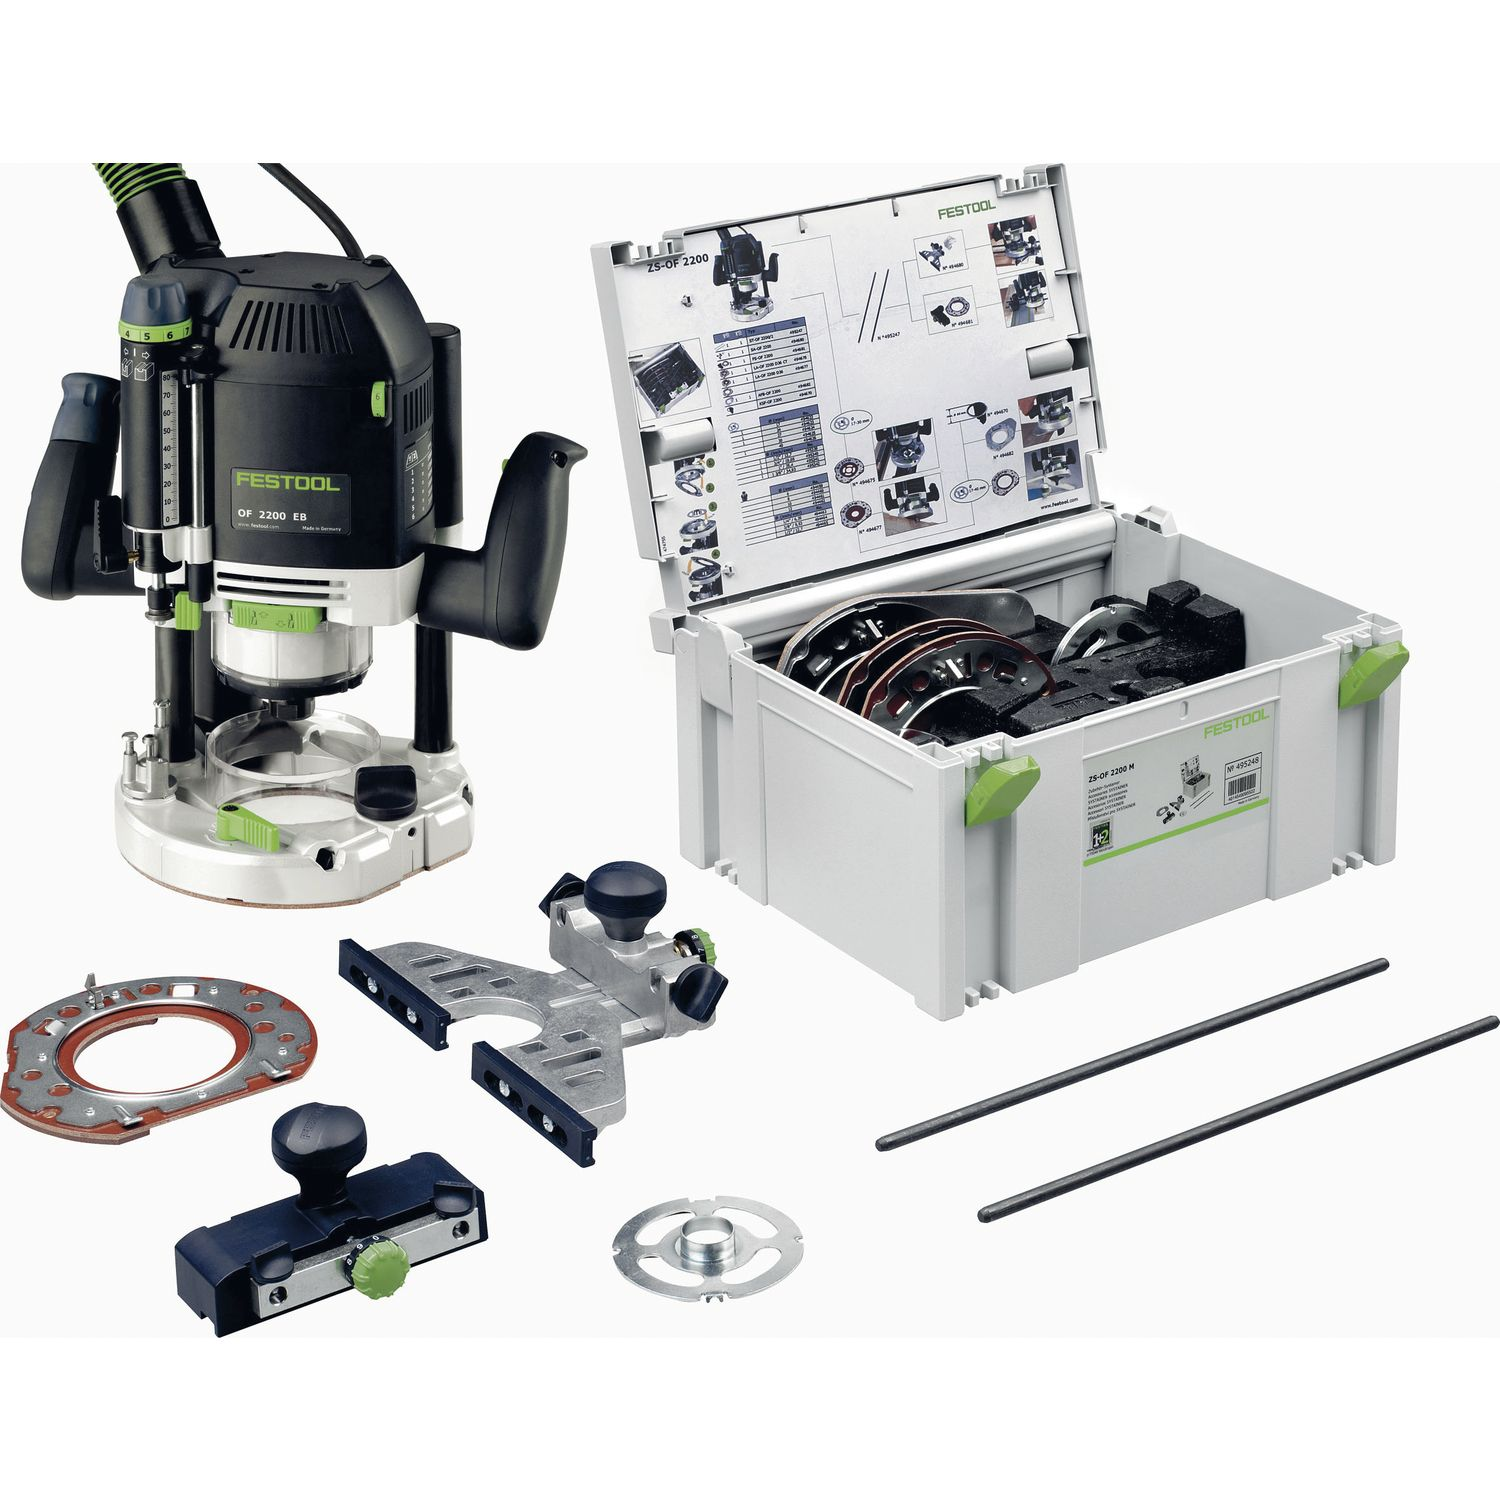 festool handoberfr se of 2200 eb set 2200 watt zubeh r systainer. Black Bedroom Furniture Sets. Home Design Ideas